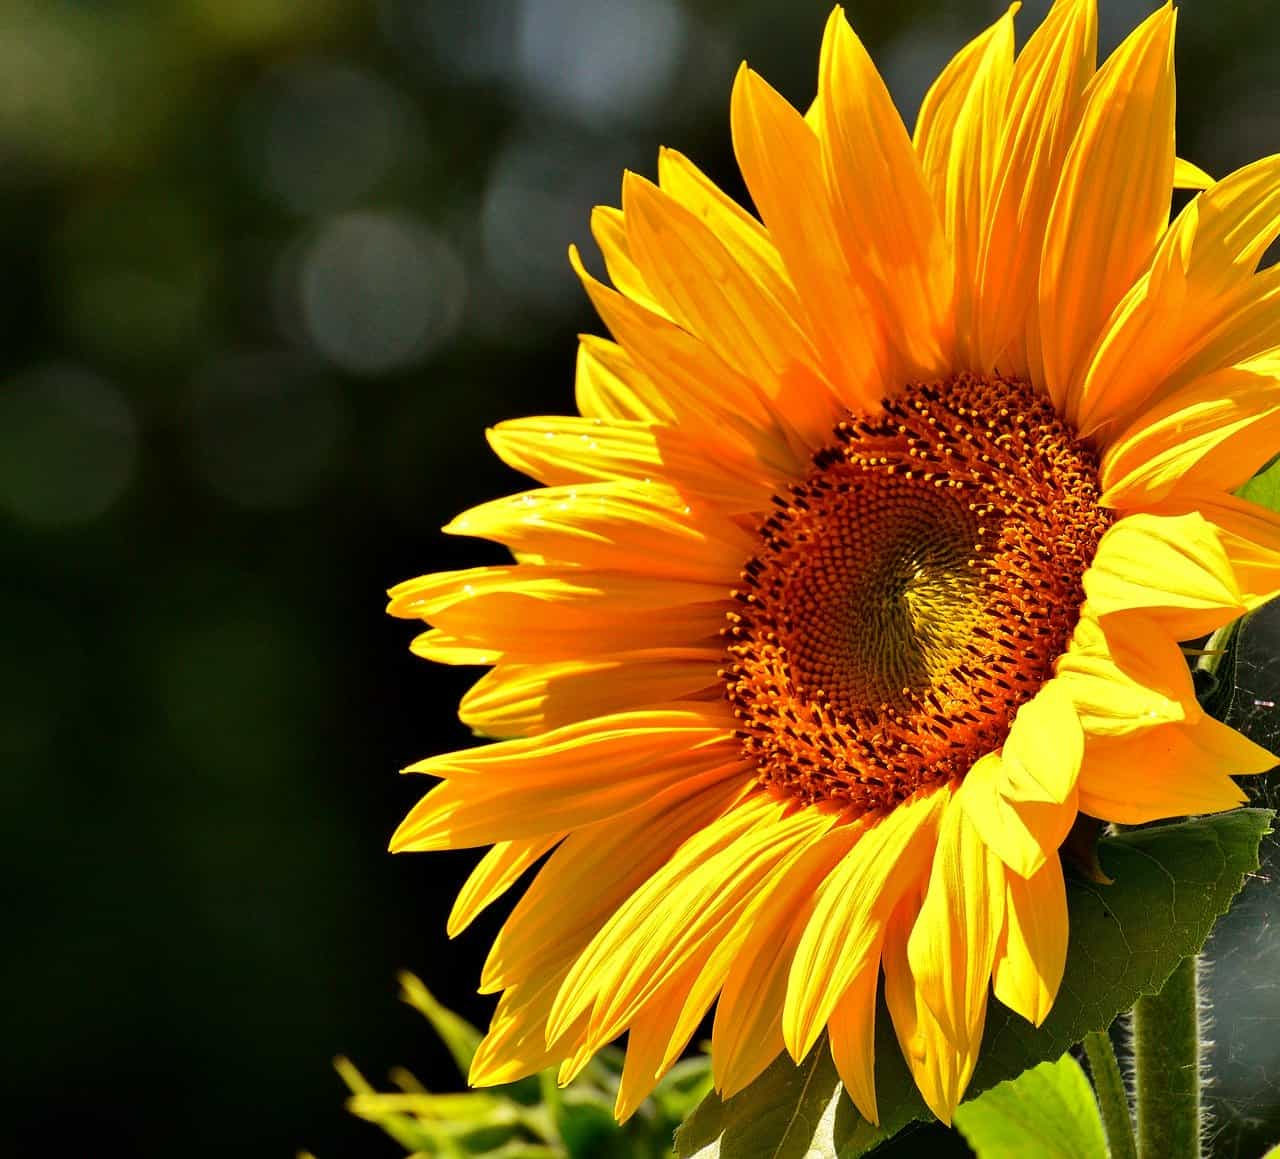 Growing and caring for Sunflowers in a balcony garden